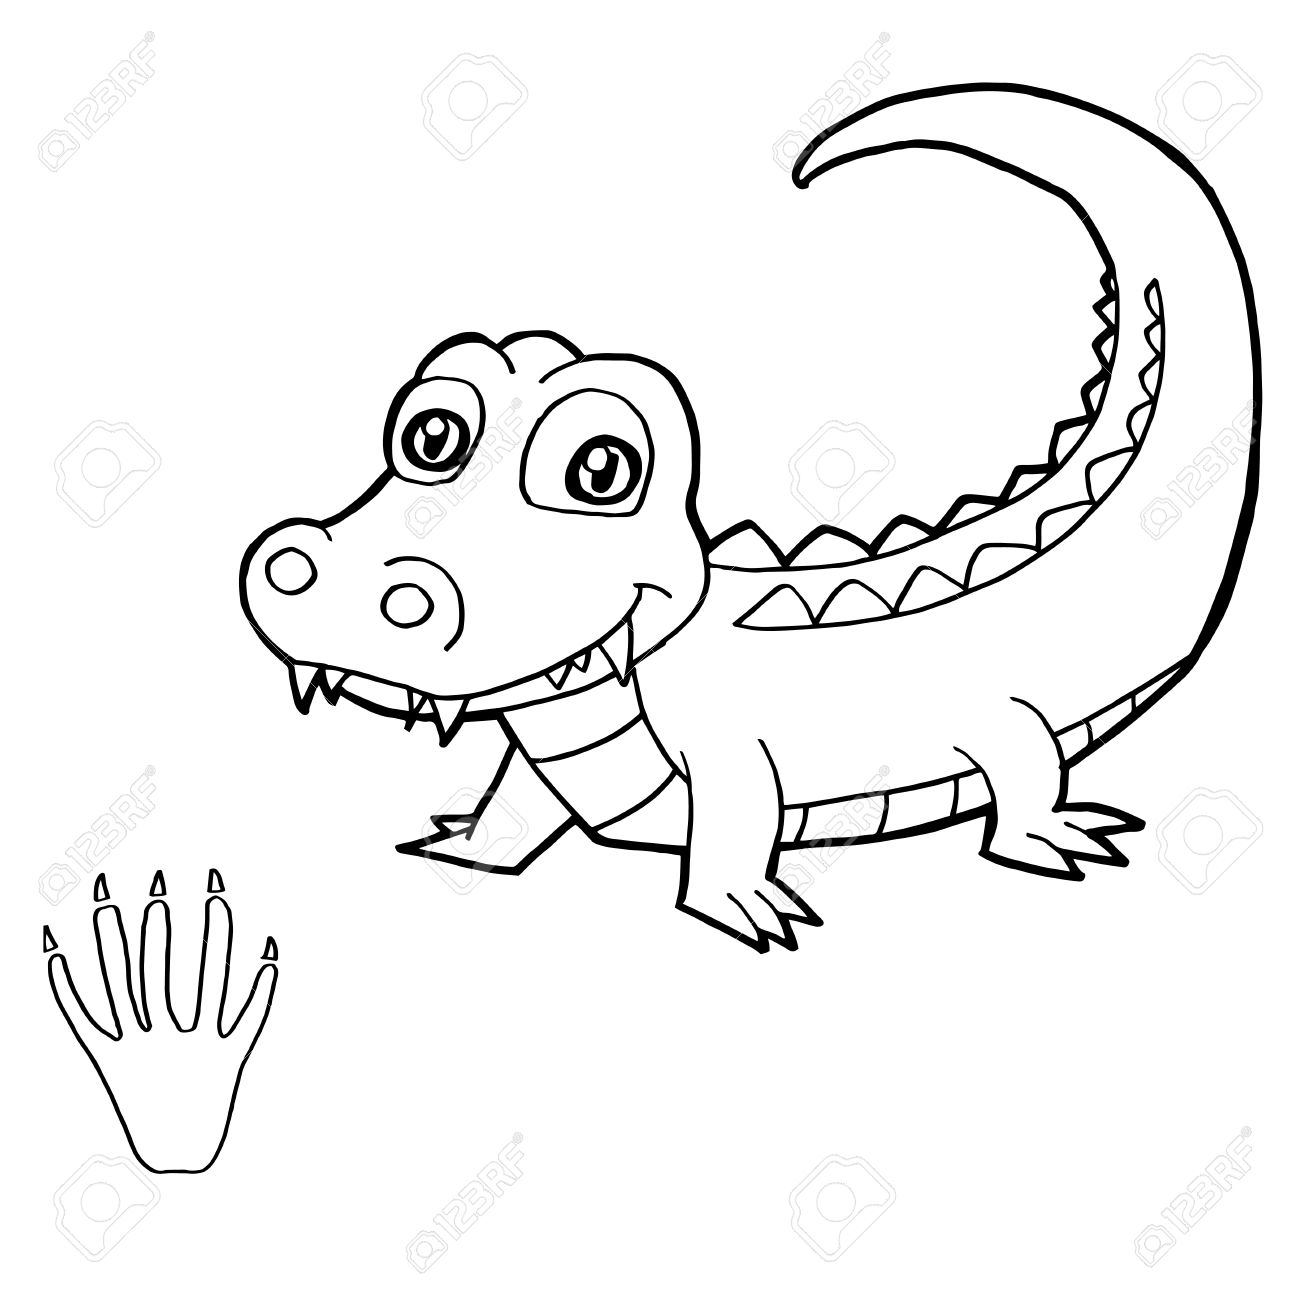 Paw Print With Crocodile Coloring Pages Vector Royalty Free Cliparts ...